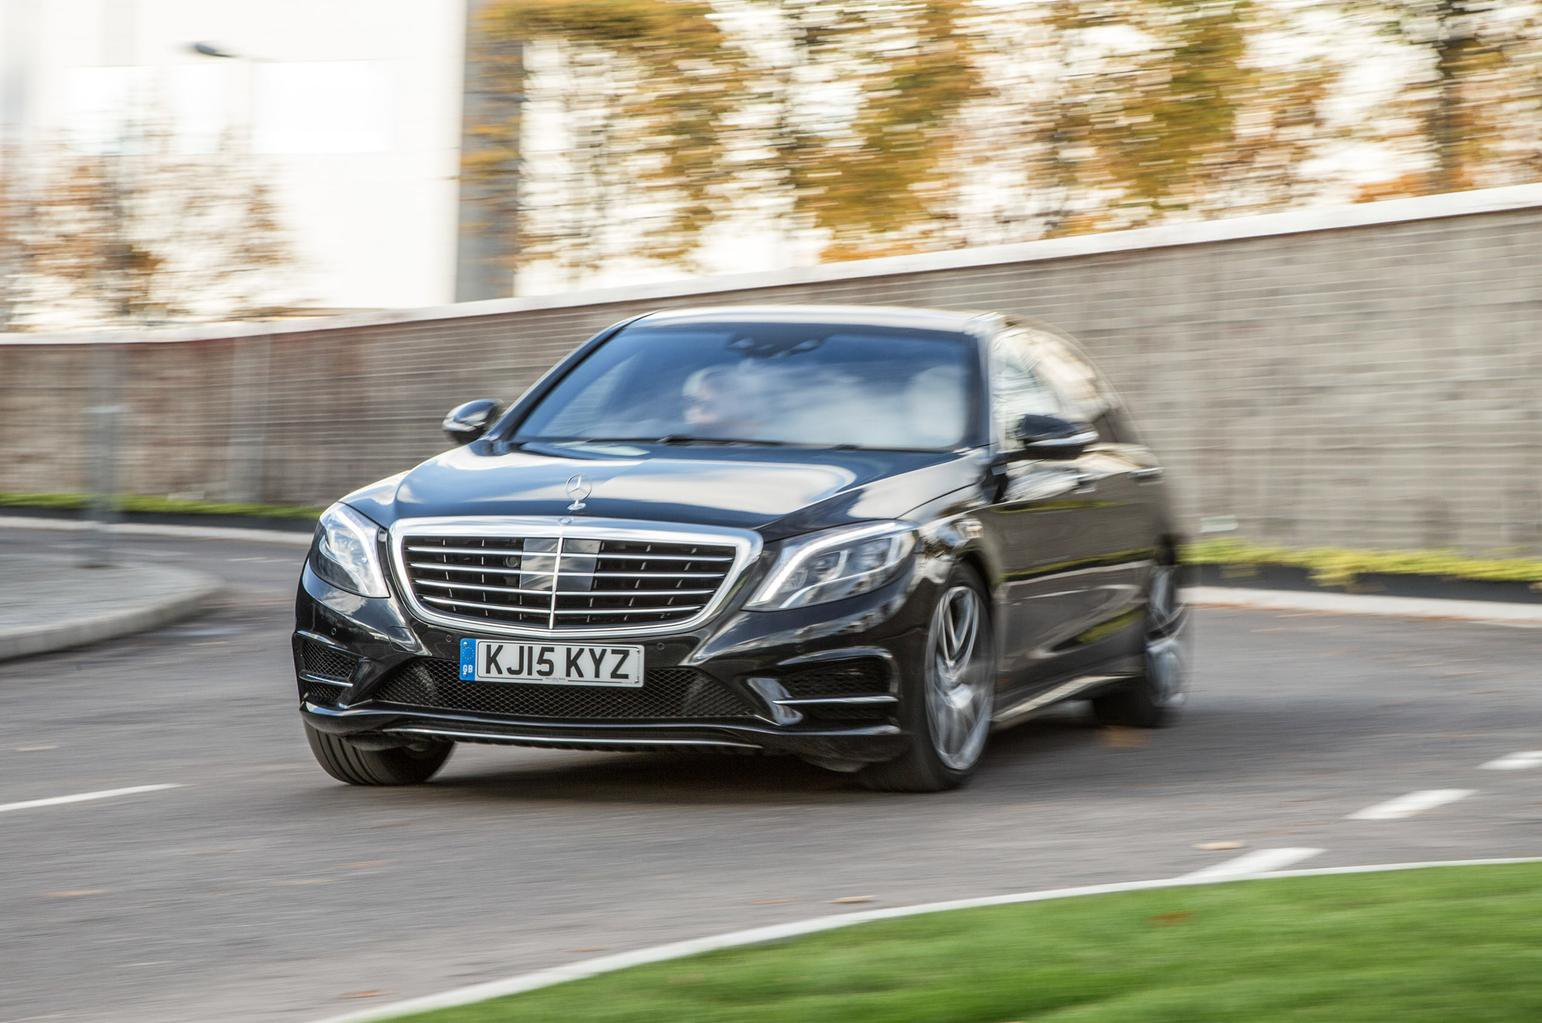 The best luxury cars to buy right now